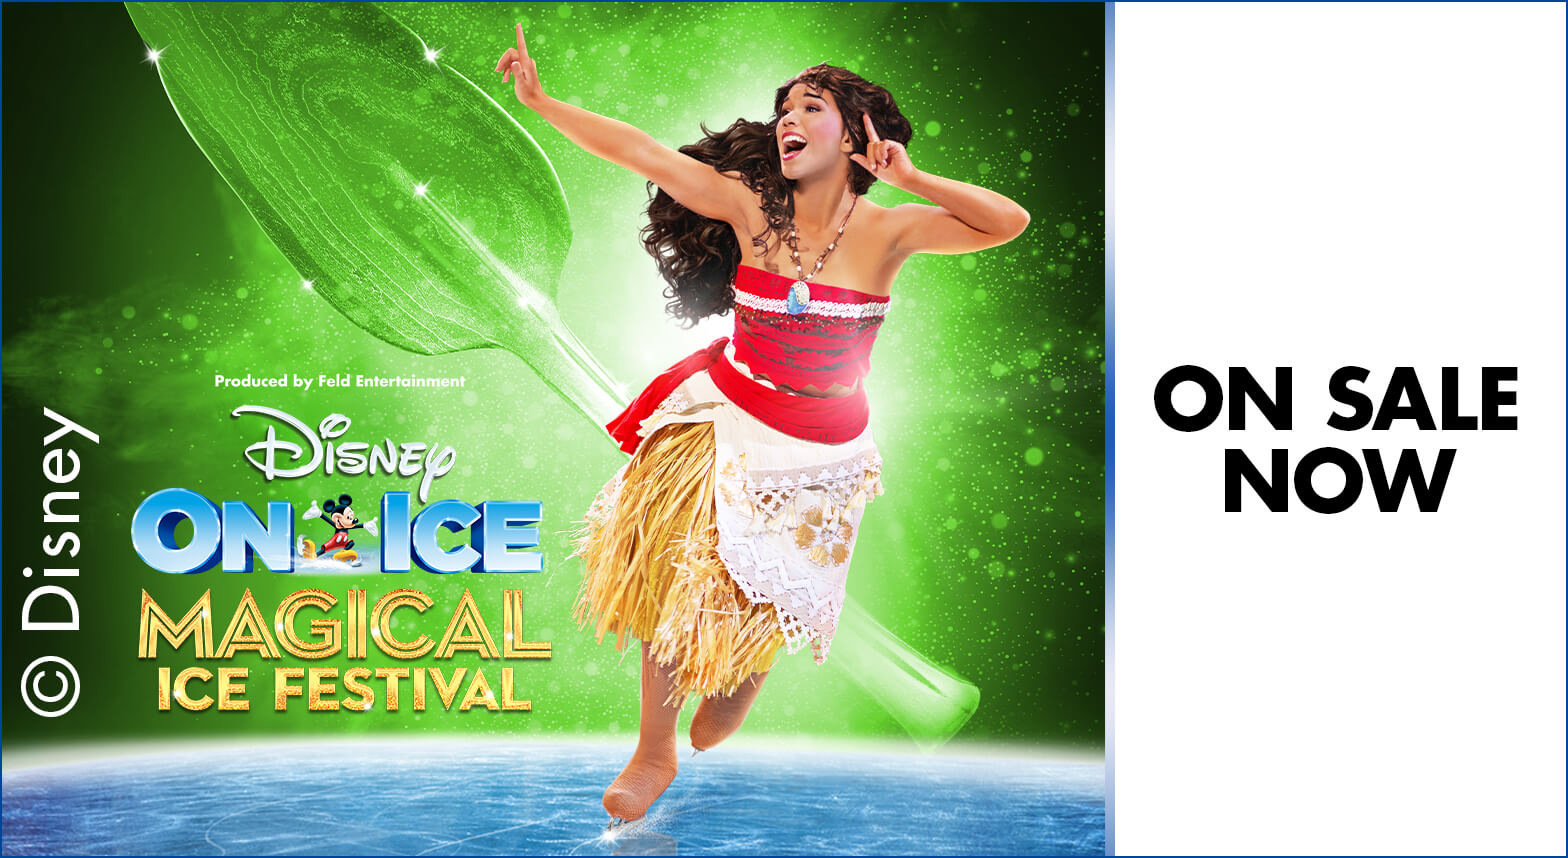 disney-on-ice-2020-arenas-onsale.jpg